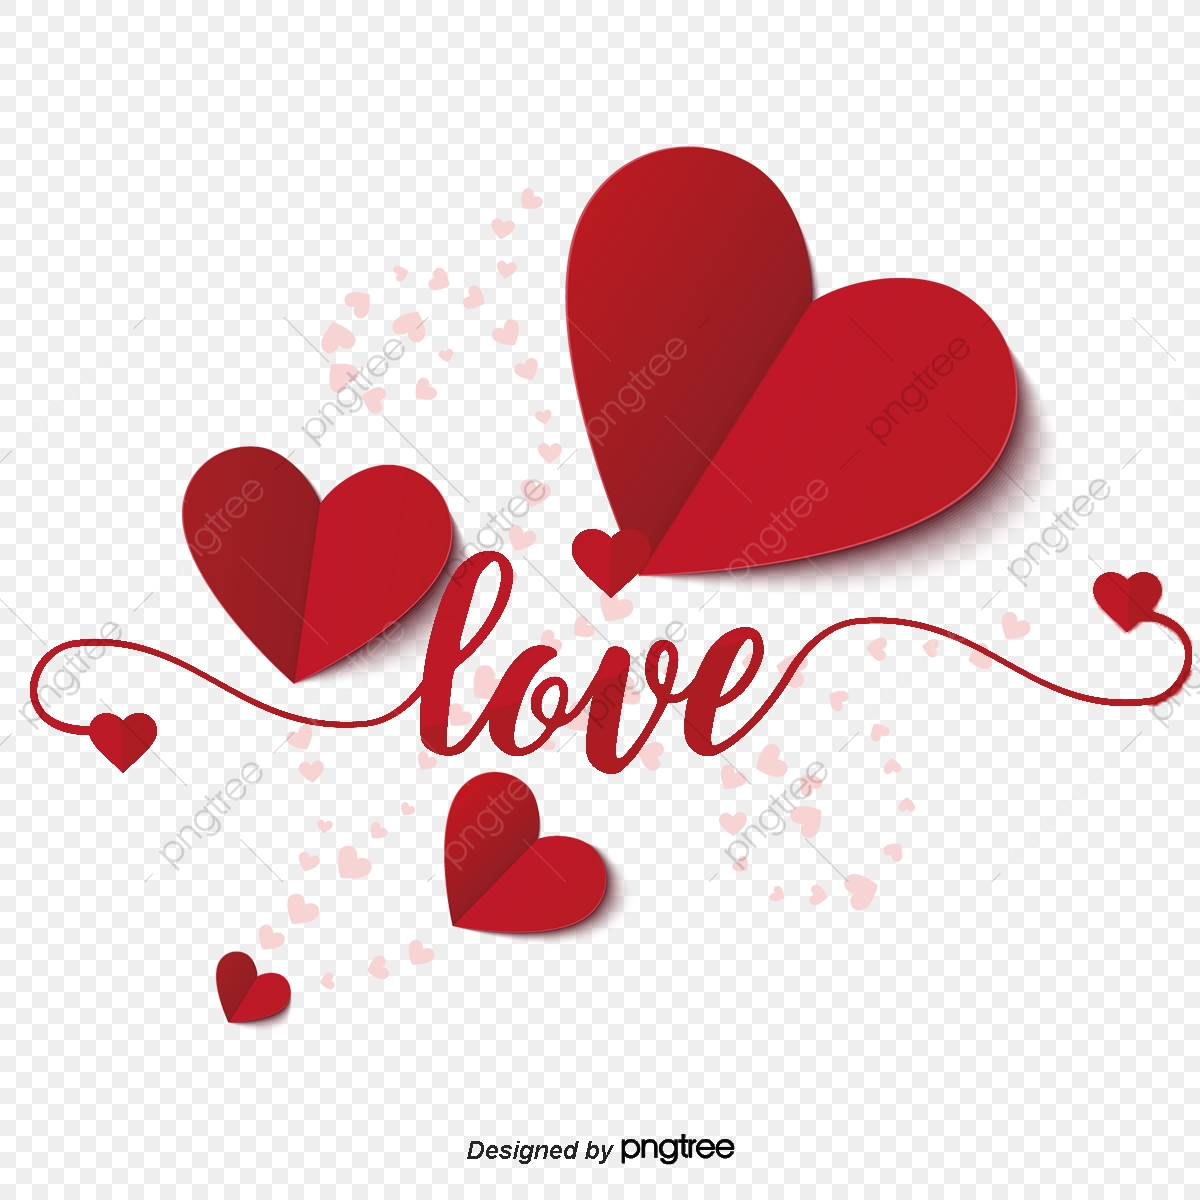 pngtree red love origami valentines day elements png image